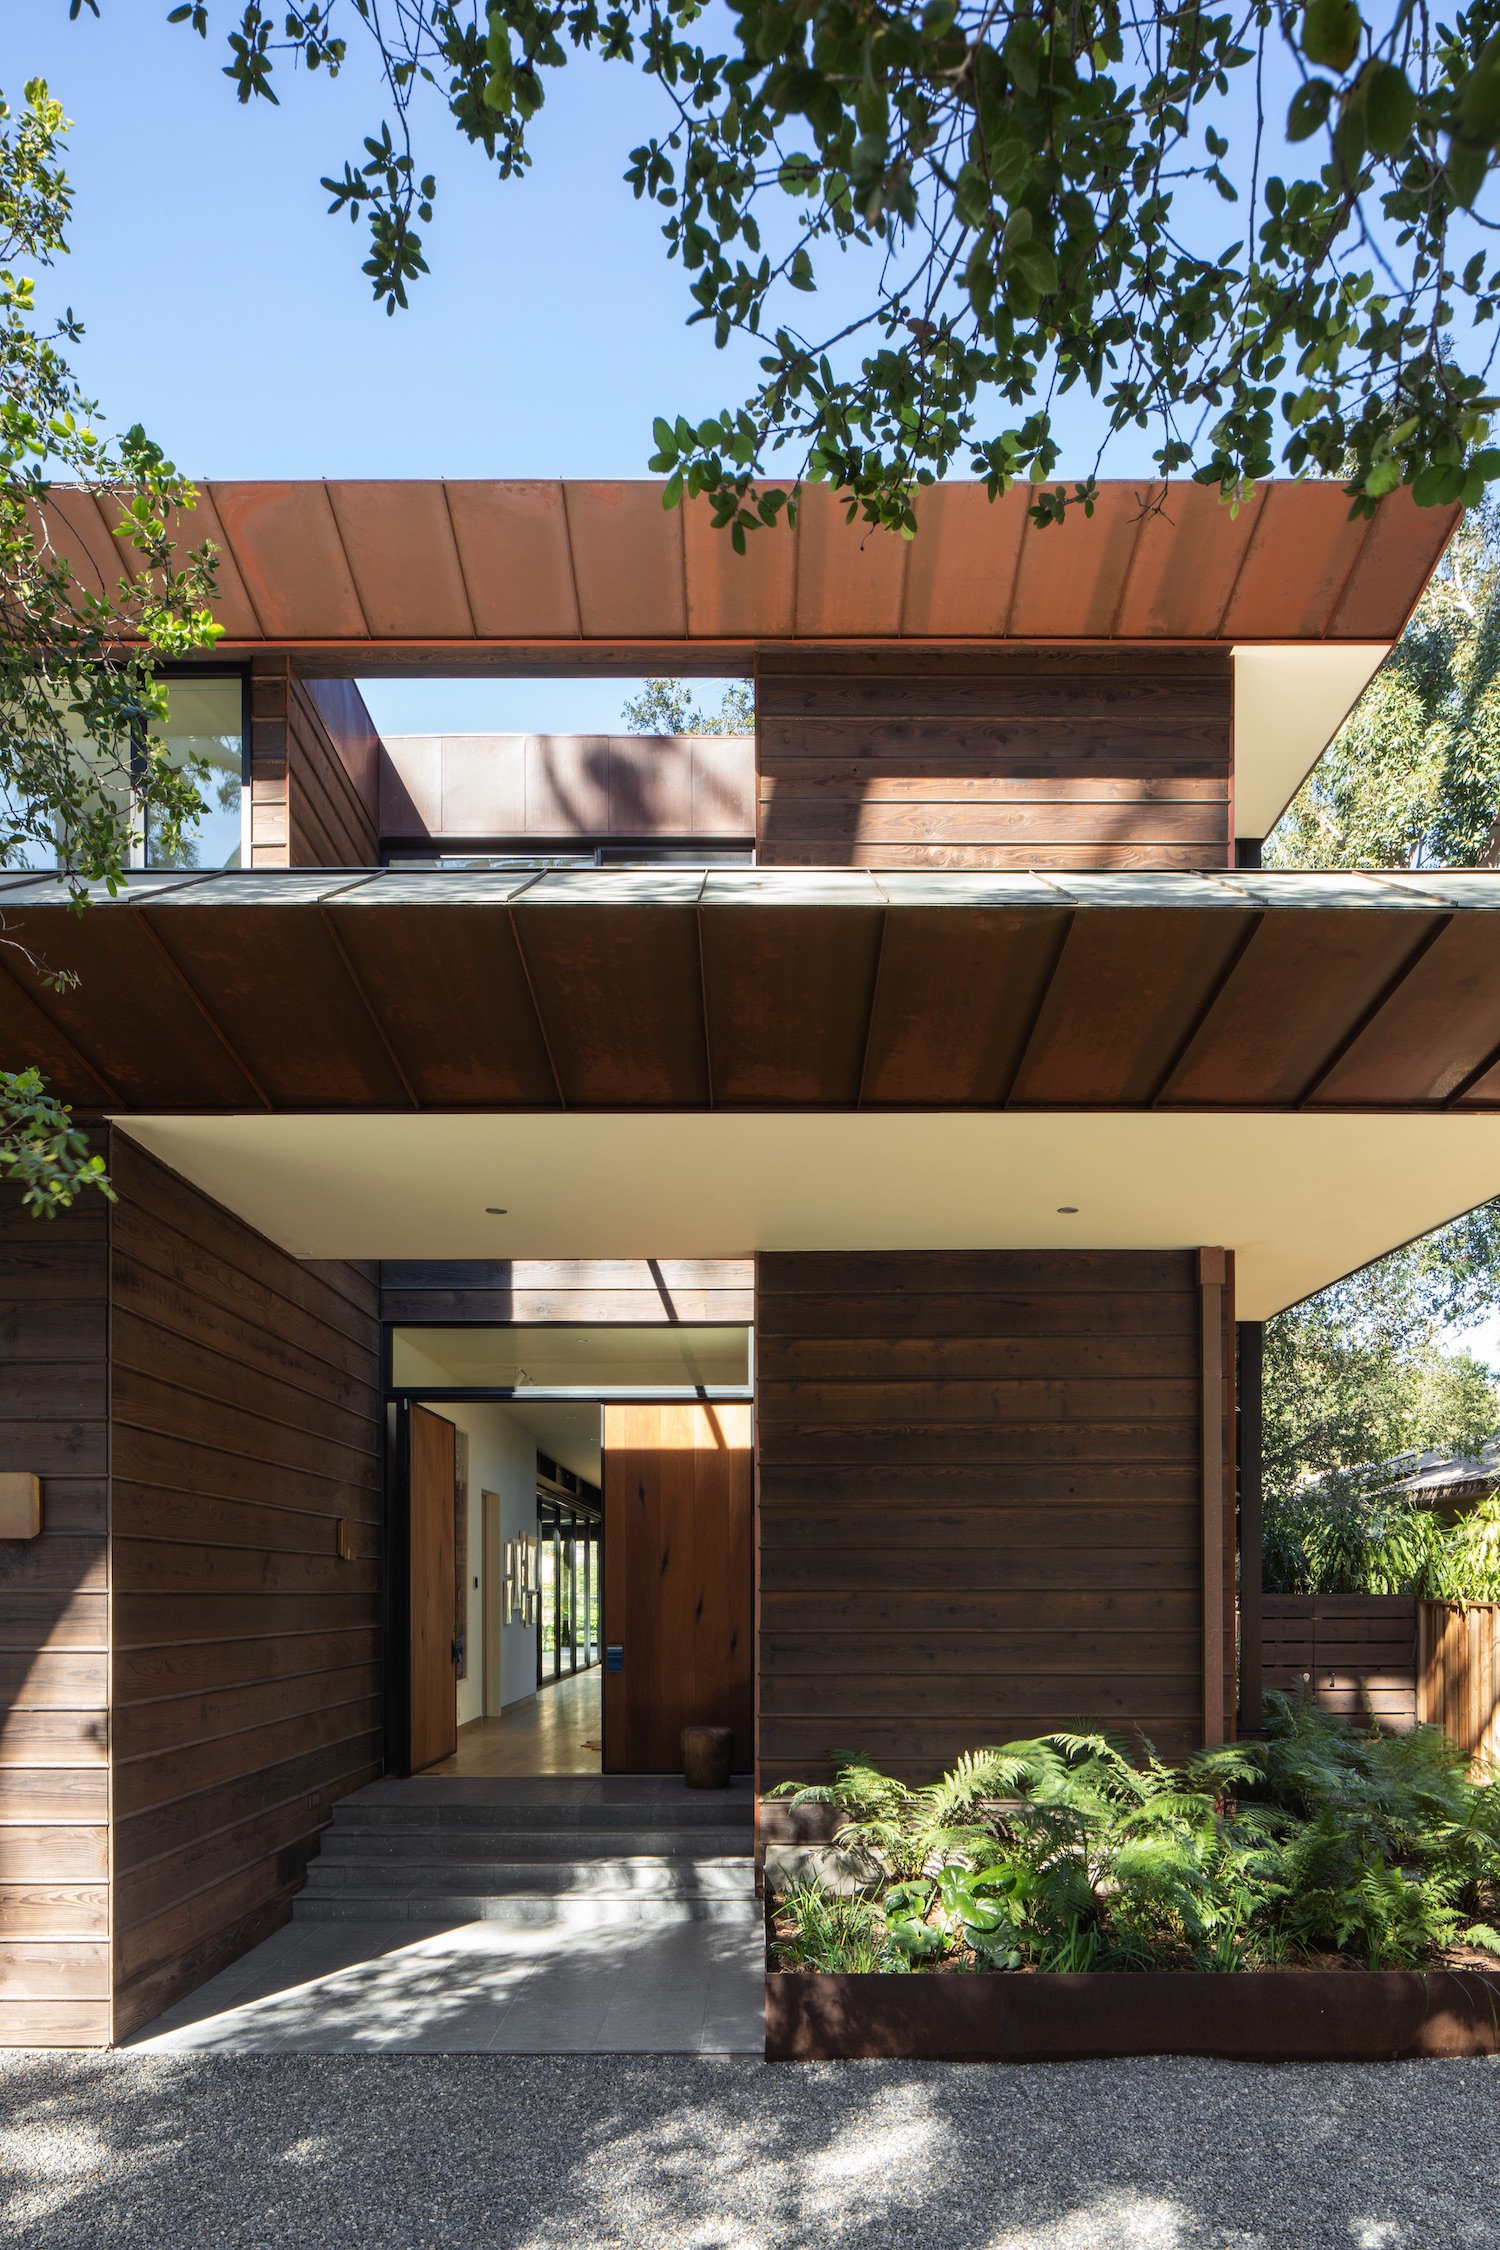 the house facade made with wood material